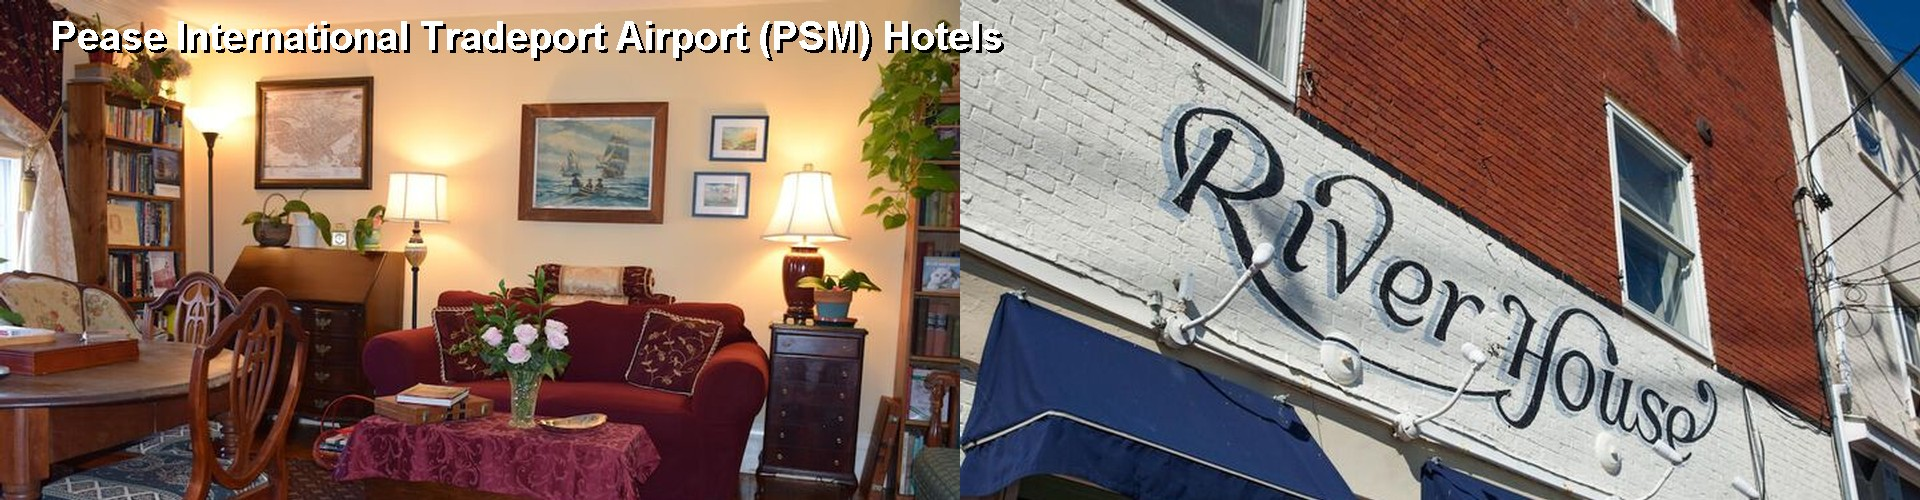 5 Best Hotels near Pease International Tradeport Airport (PSM)